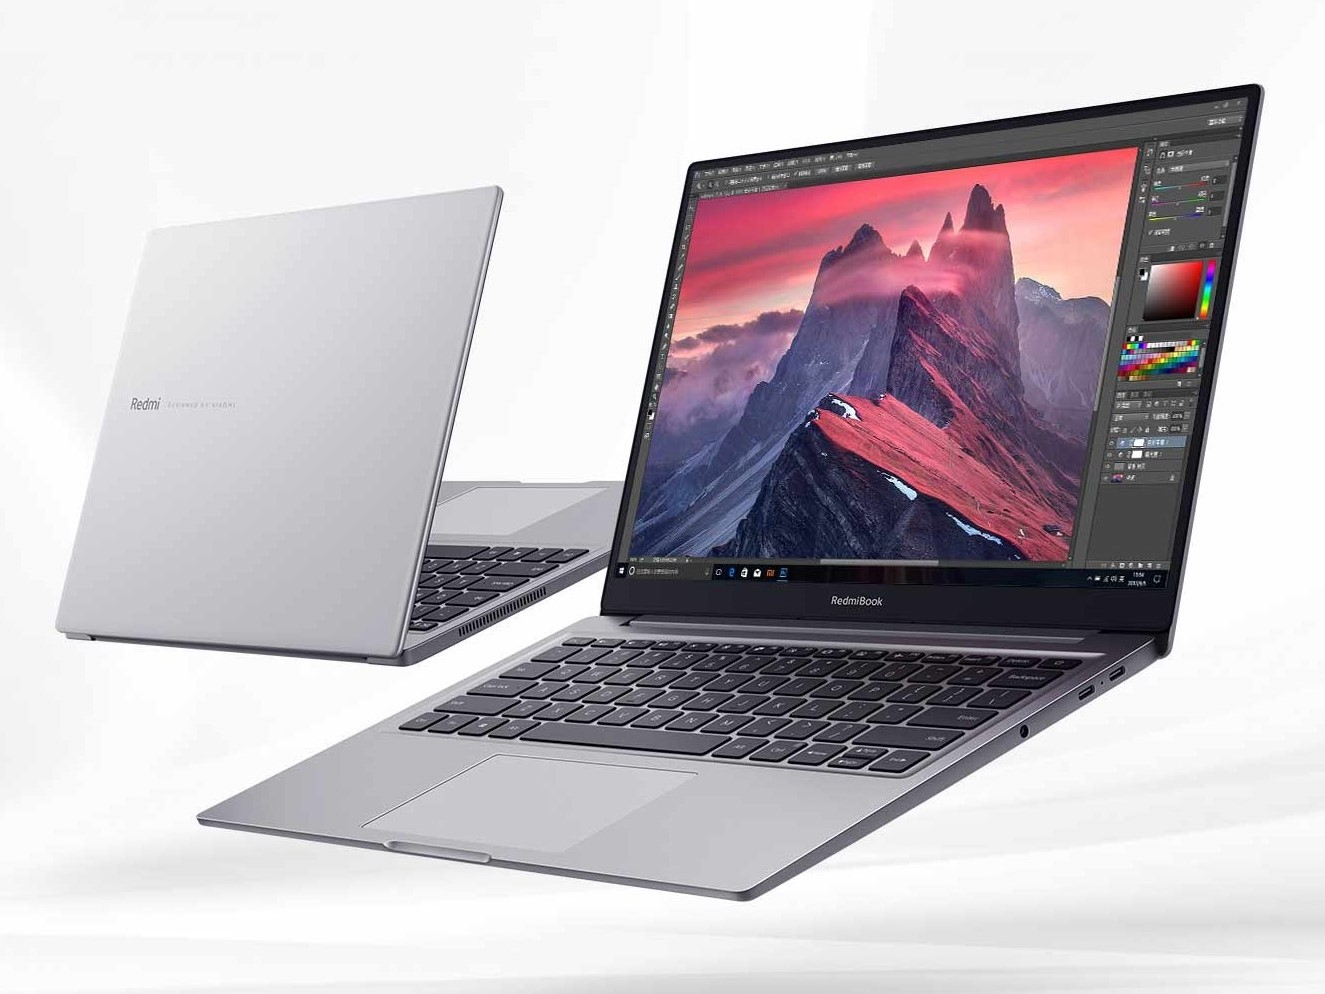 Xiaomi RedmiBook Air 13 launched: A laptop with a 2.5K display, a minimal design and up to 16 GB of RAM for ~US$750 - Notebookcheck.net